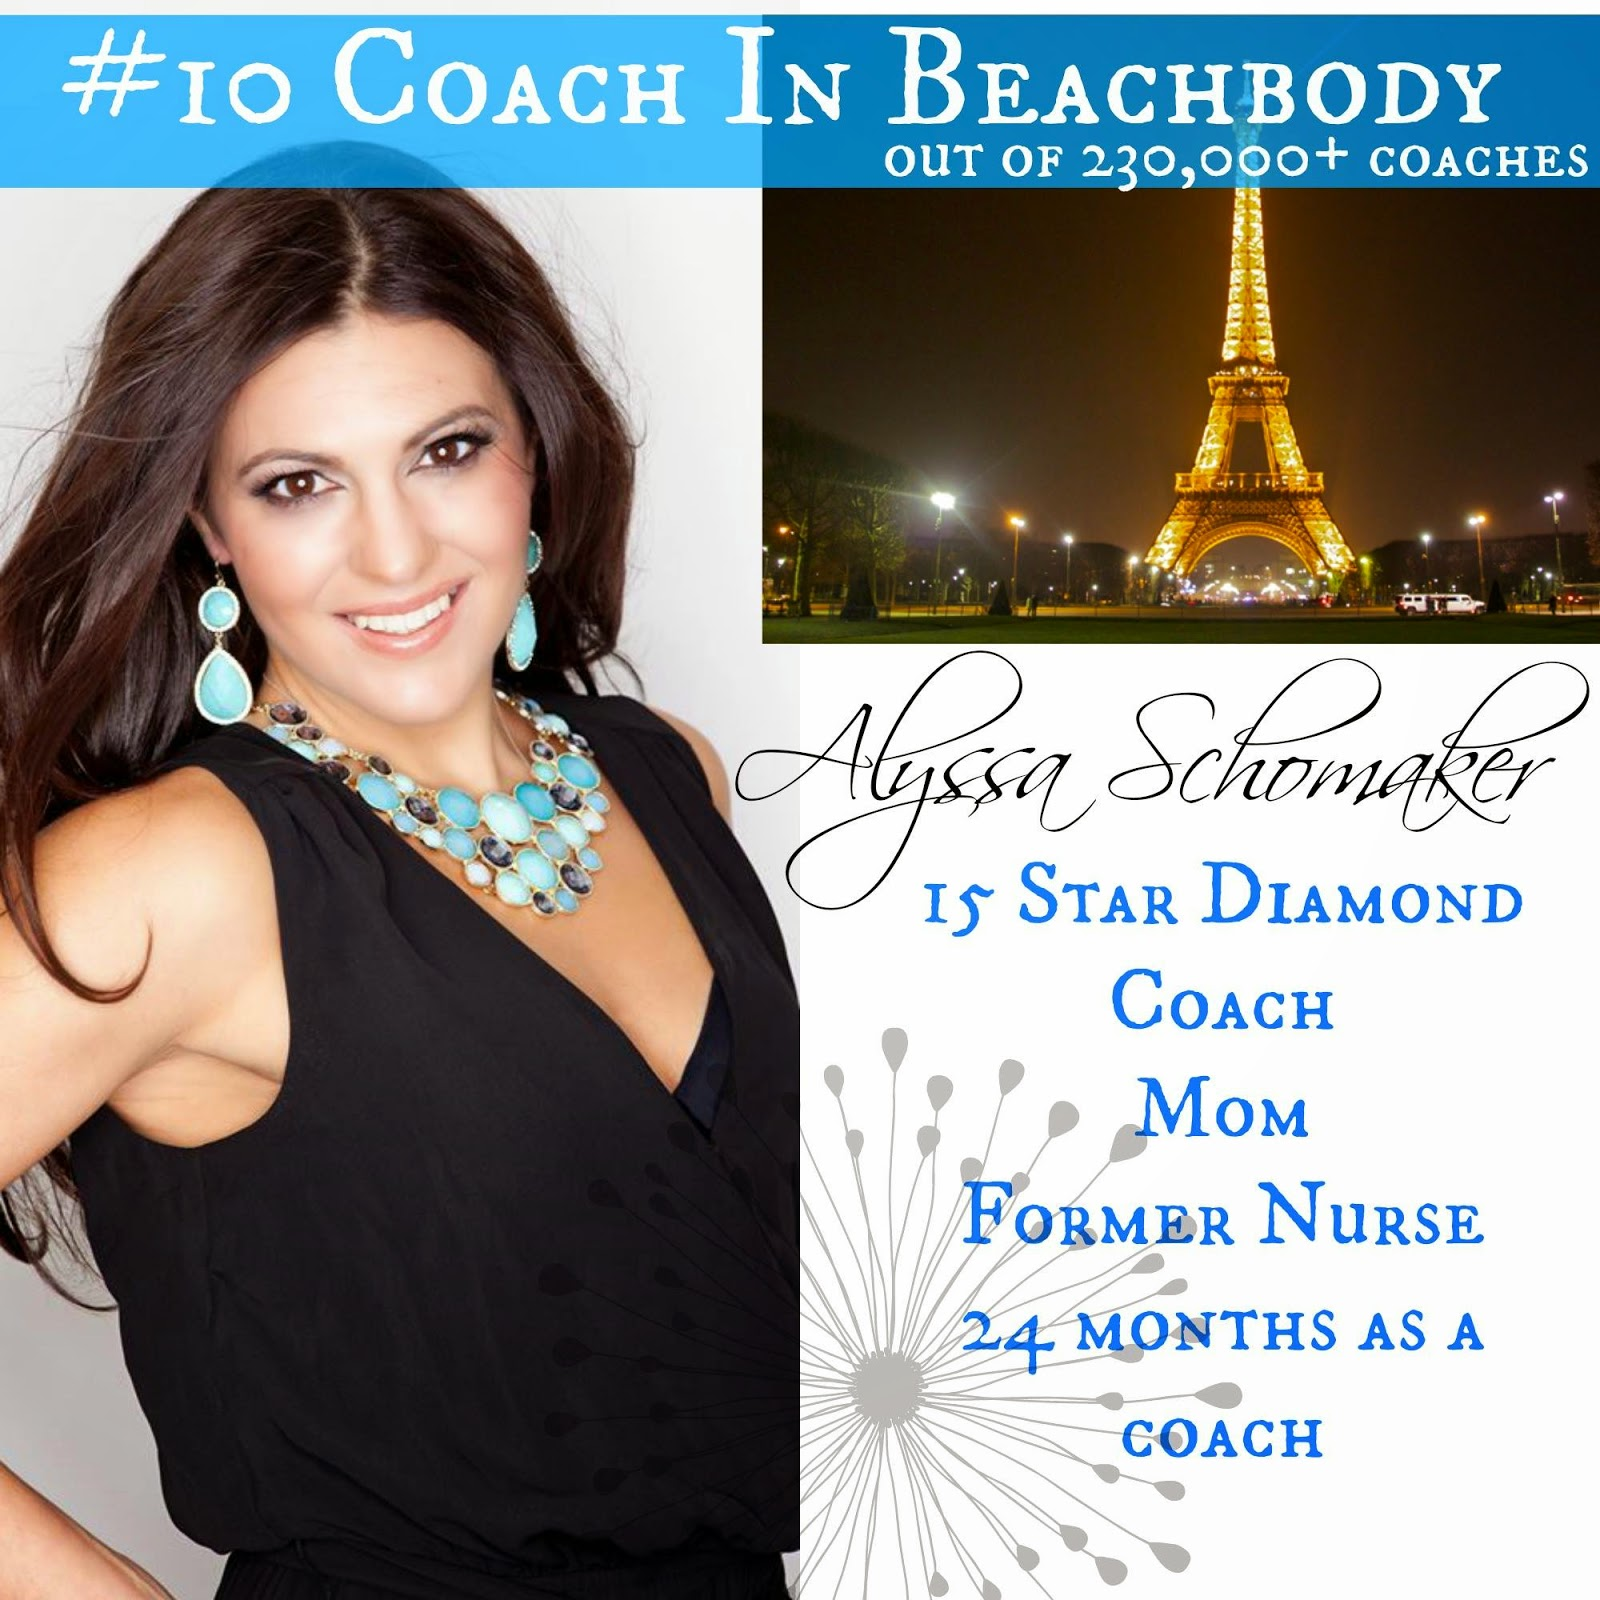 A Fit Nurse 2014 Top 10 Team Beachbody coach